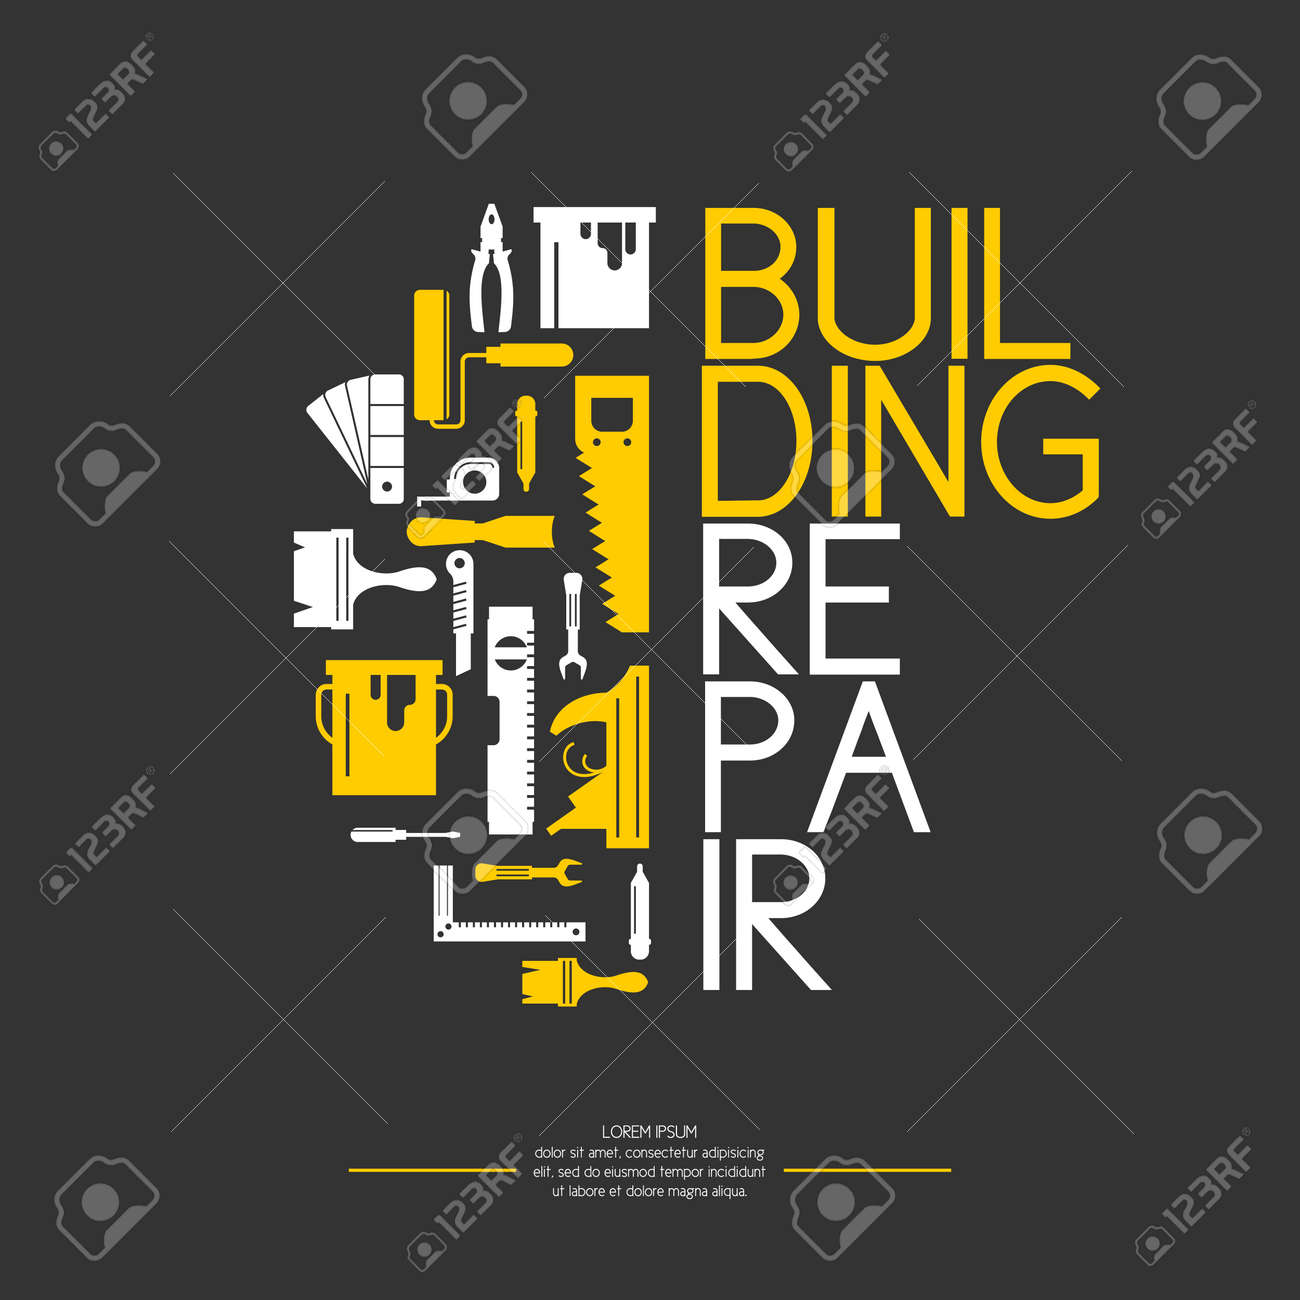 Hand tools for home renovation and construction. Tools in a bright, flat style. Building and house repair. Roller, brush, paint, pencil, tool, hammer, tape measure, putty knife, pencil. - 55388099